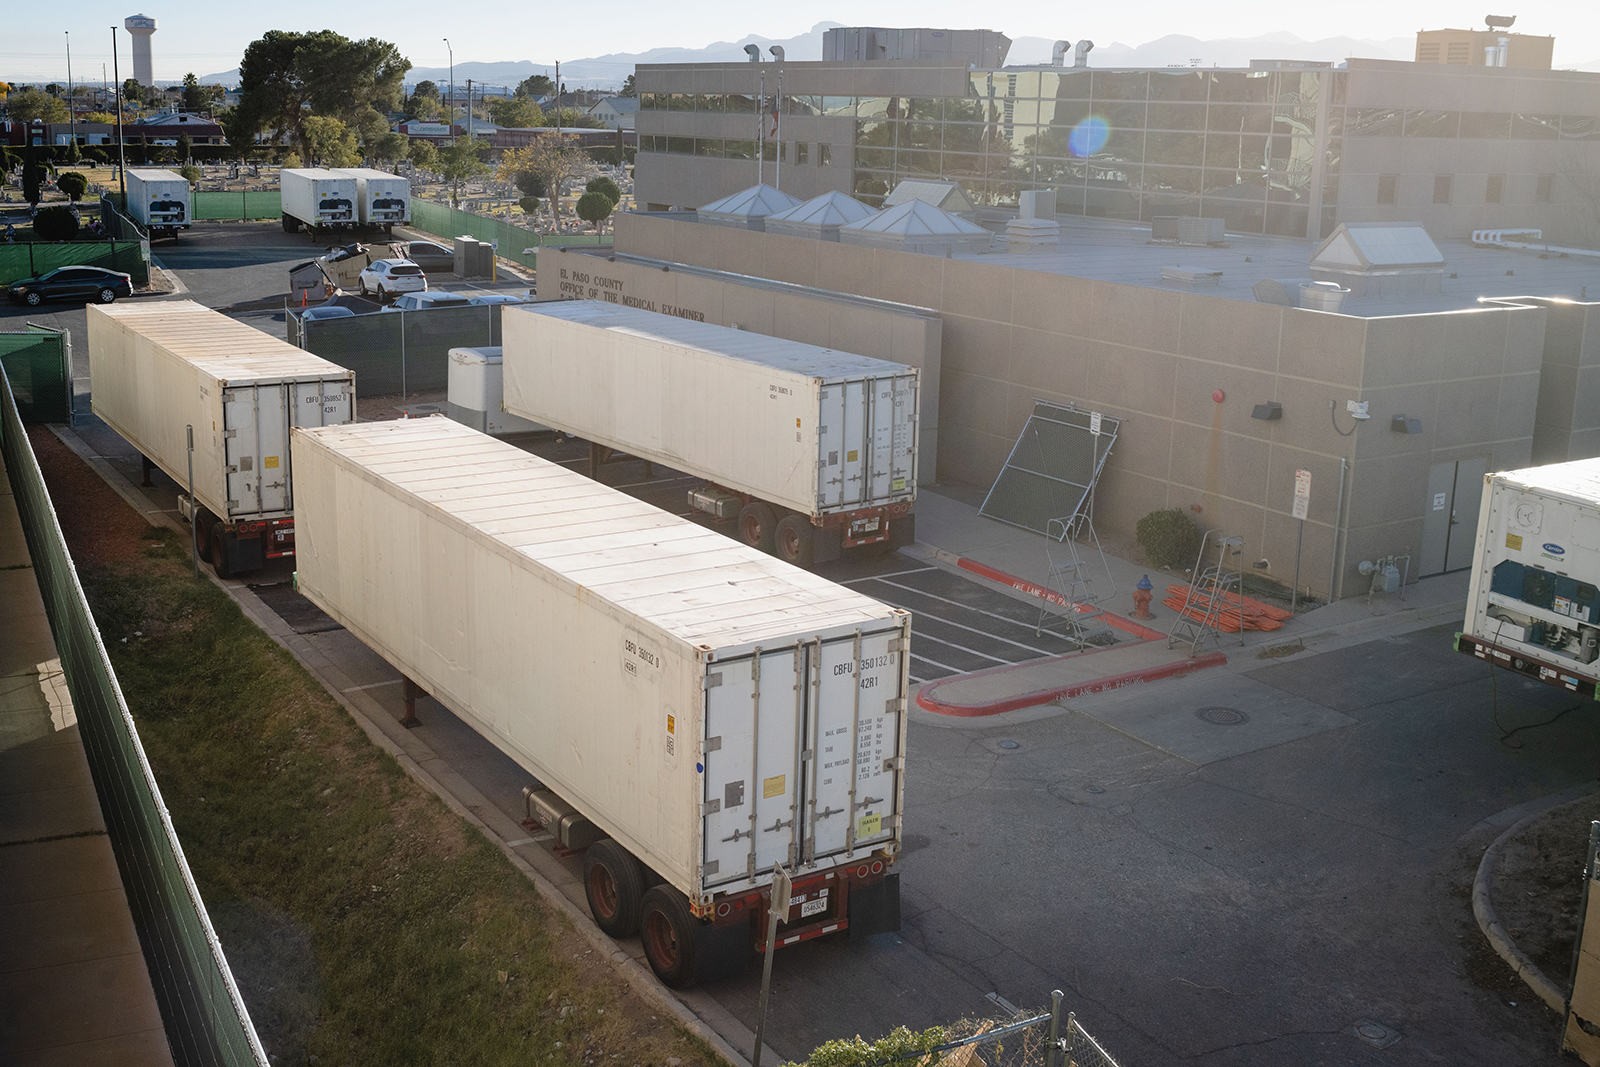 Refrigerated trailers serving as makeshift morgues are pictured outside of the El Paso County Medical Examiner's office in El Paso, Texas, on November 16.